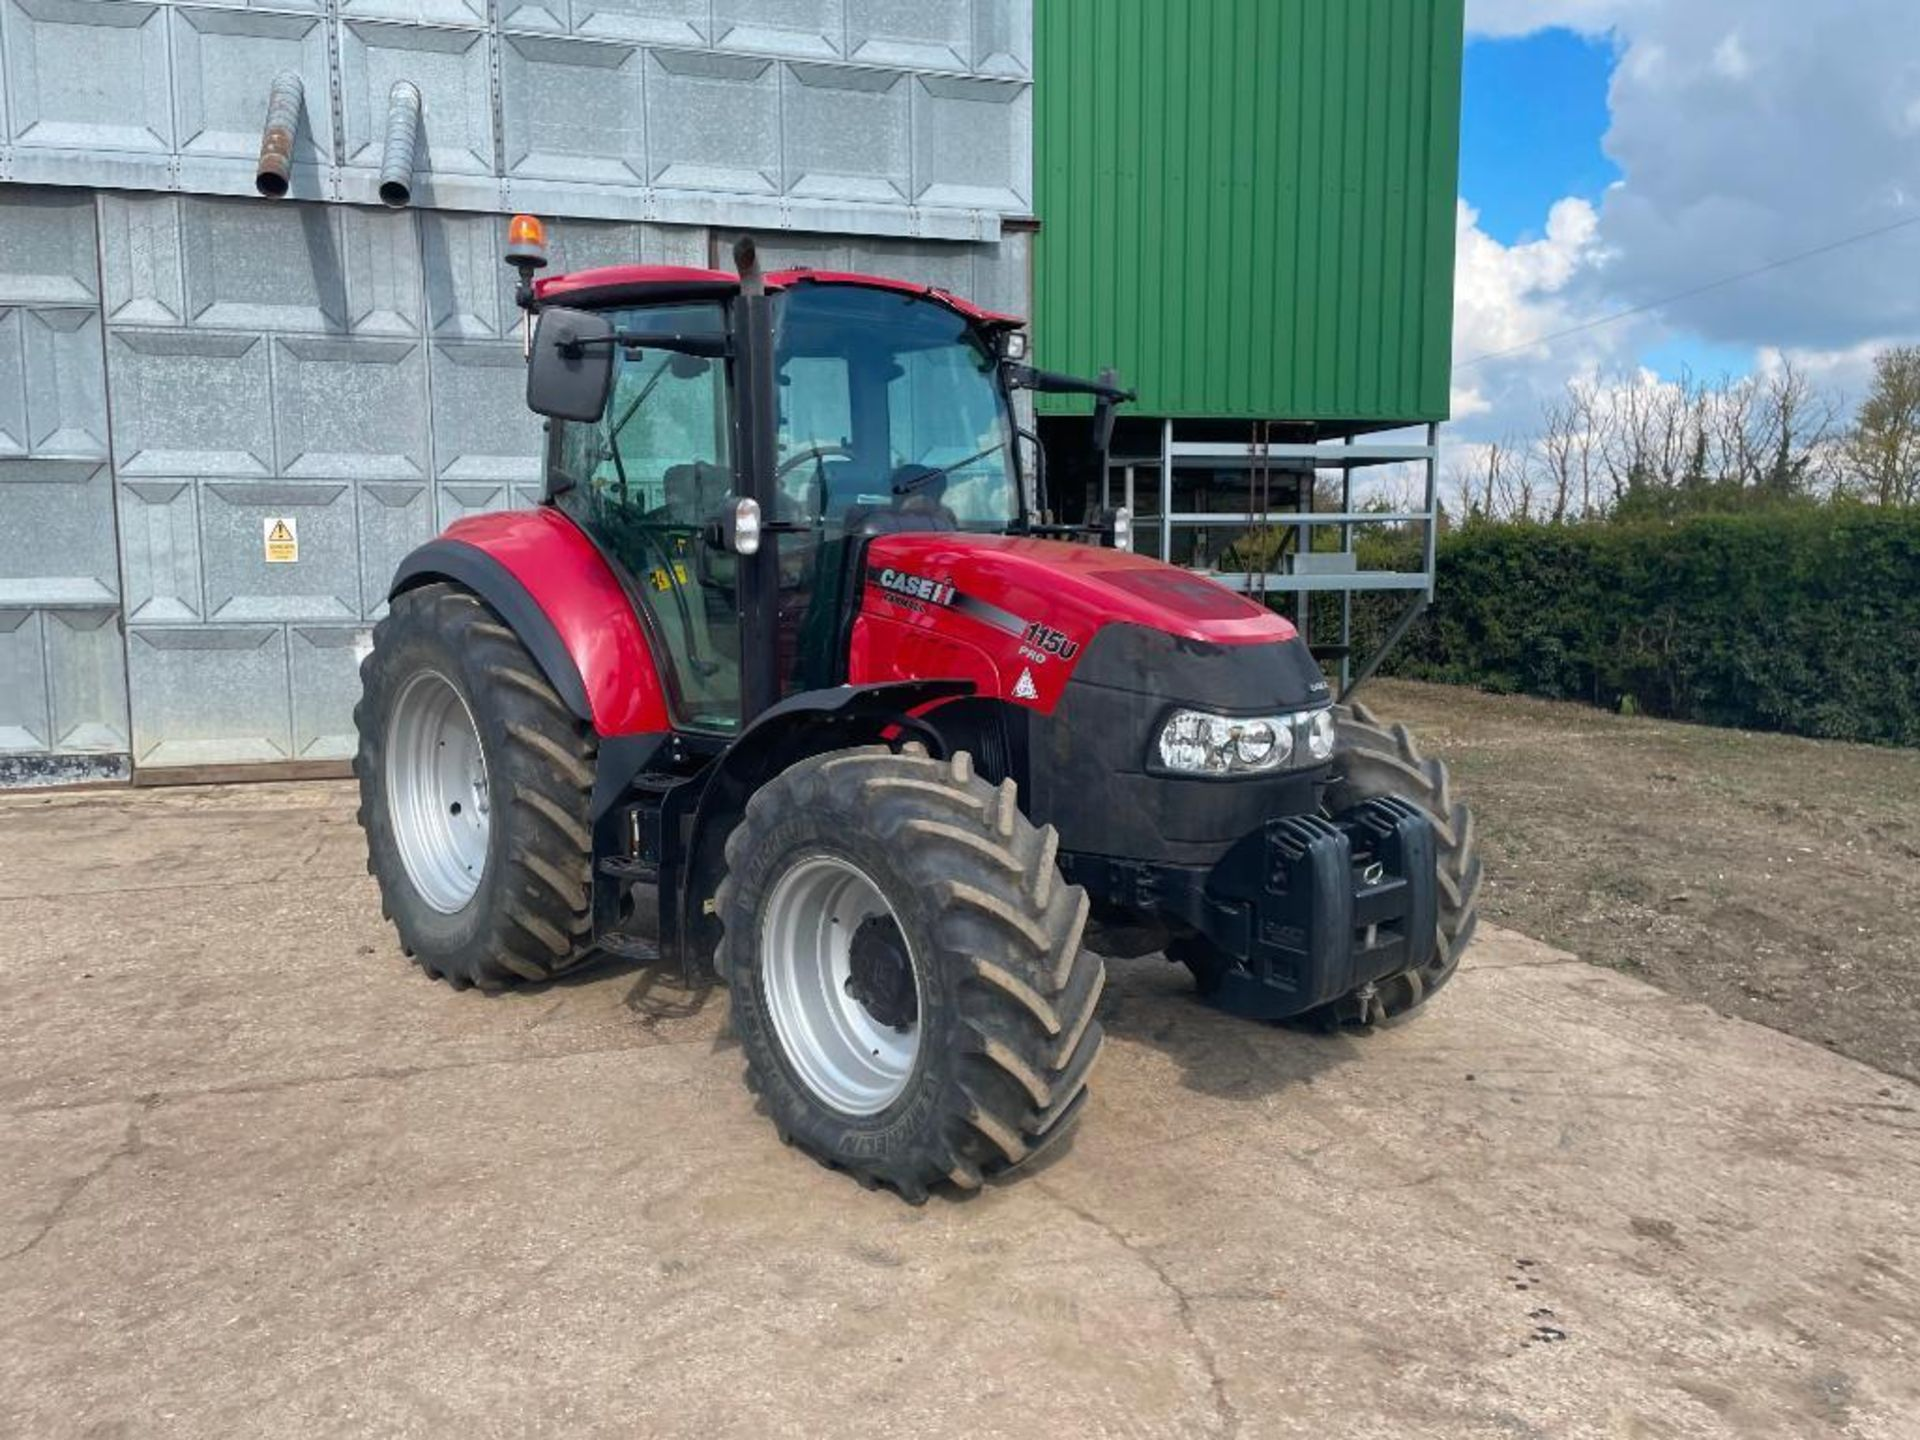 2014 Case IH Farmall 115U PRO 40Kph 4wd tractor with 2 spools, PUH on 440/65R24 front and 540/65R34 - Image 2 of 10